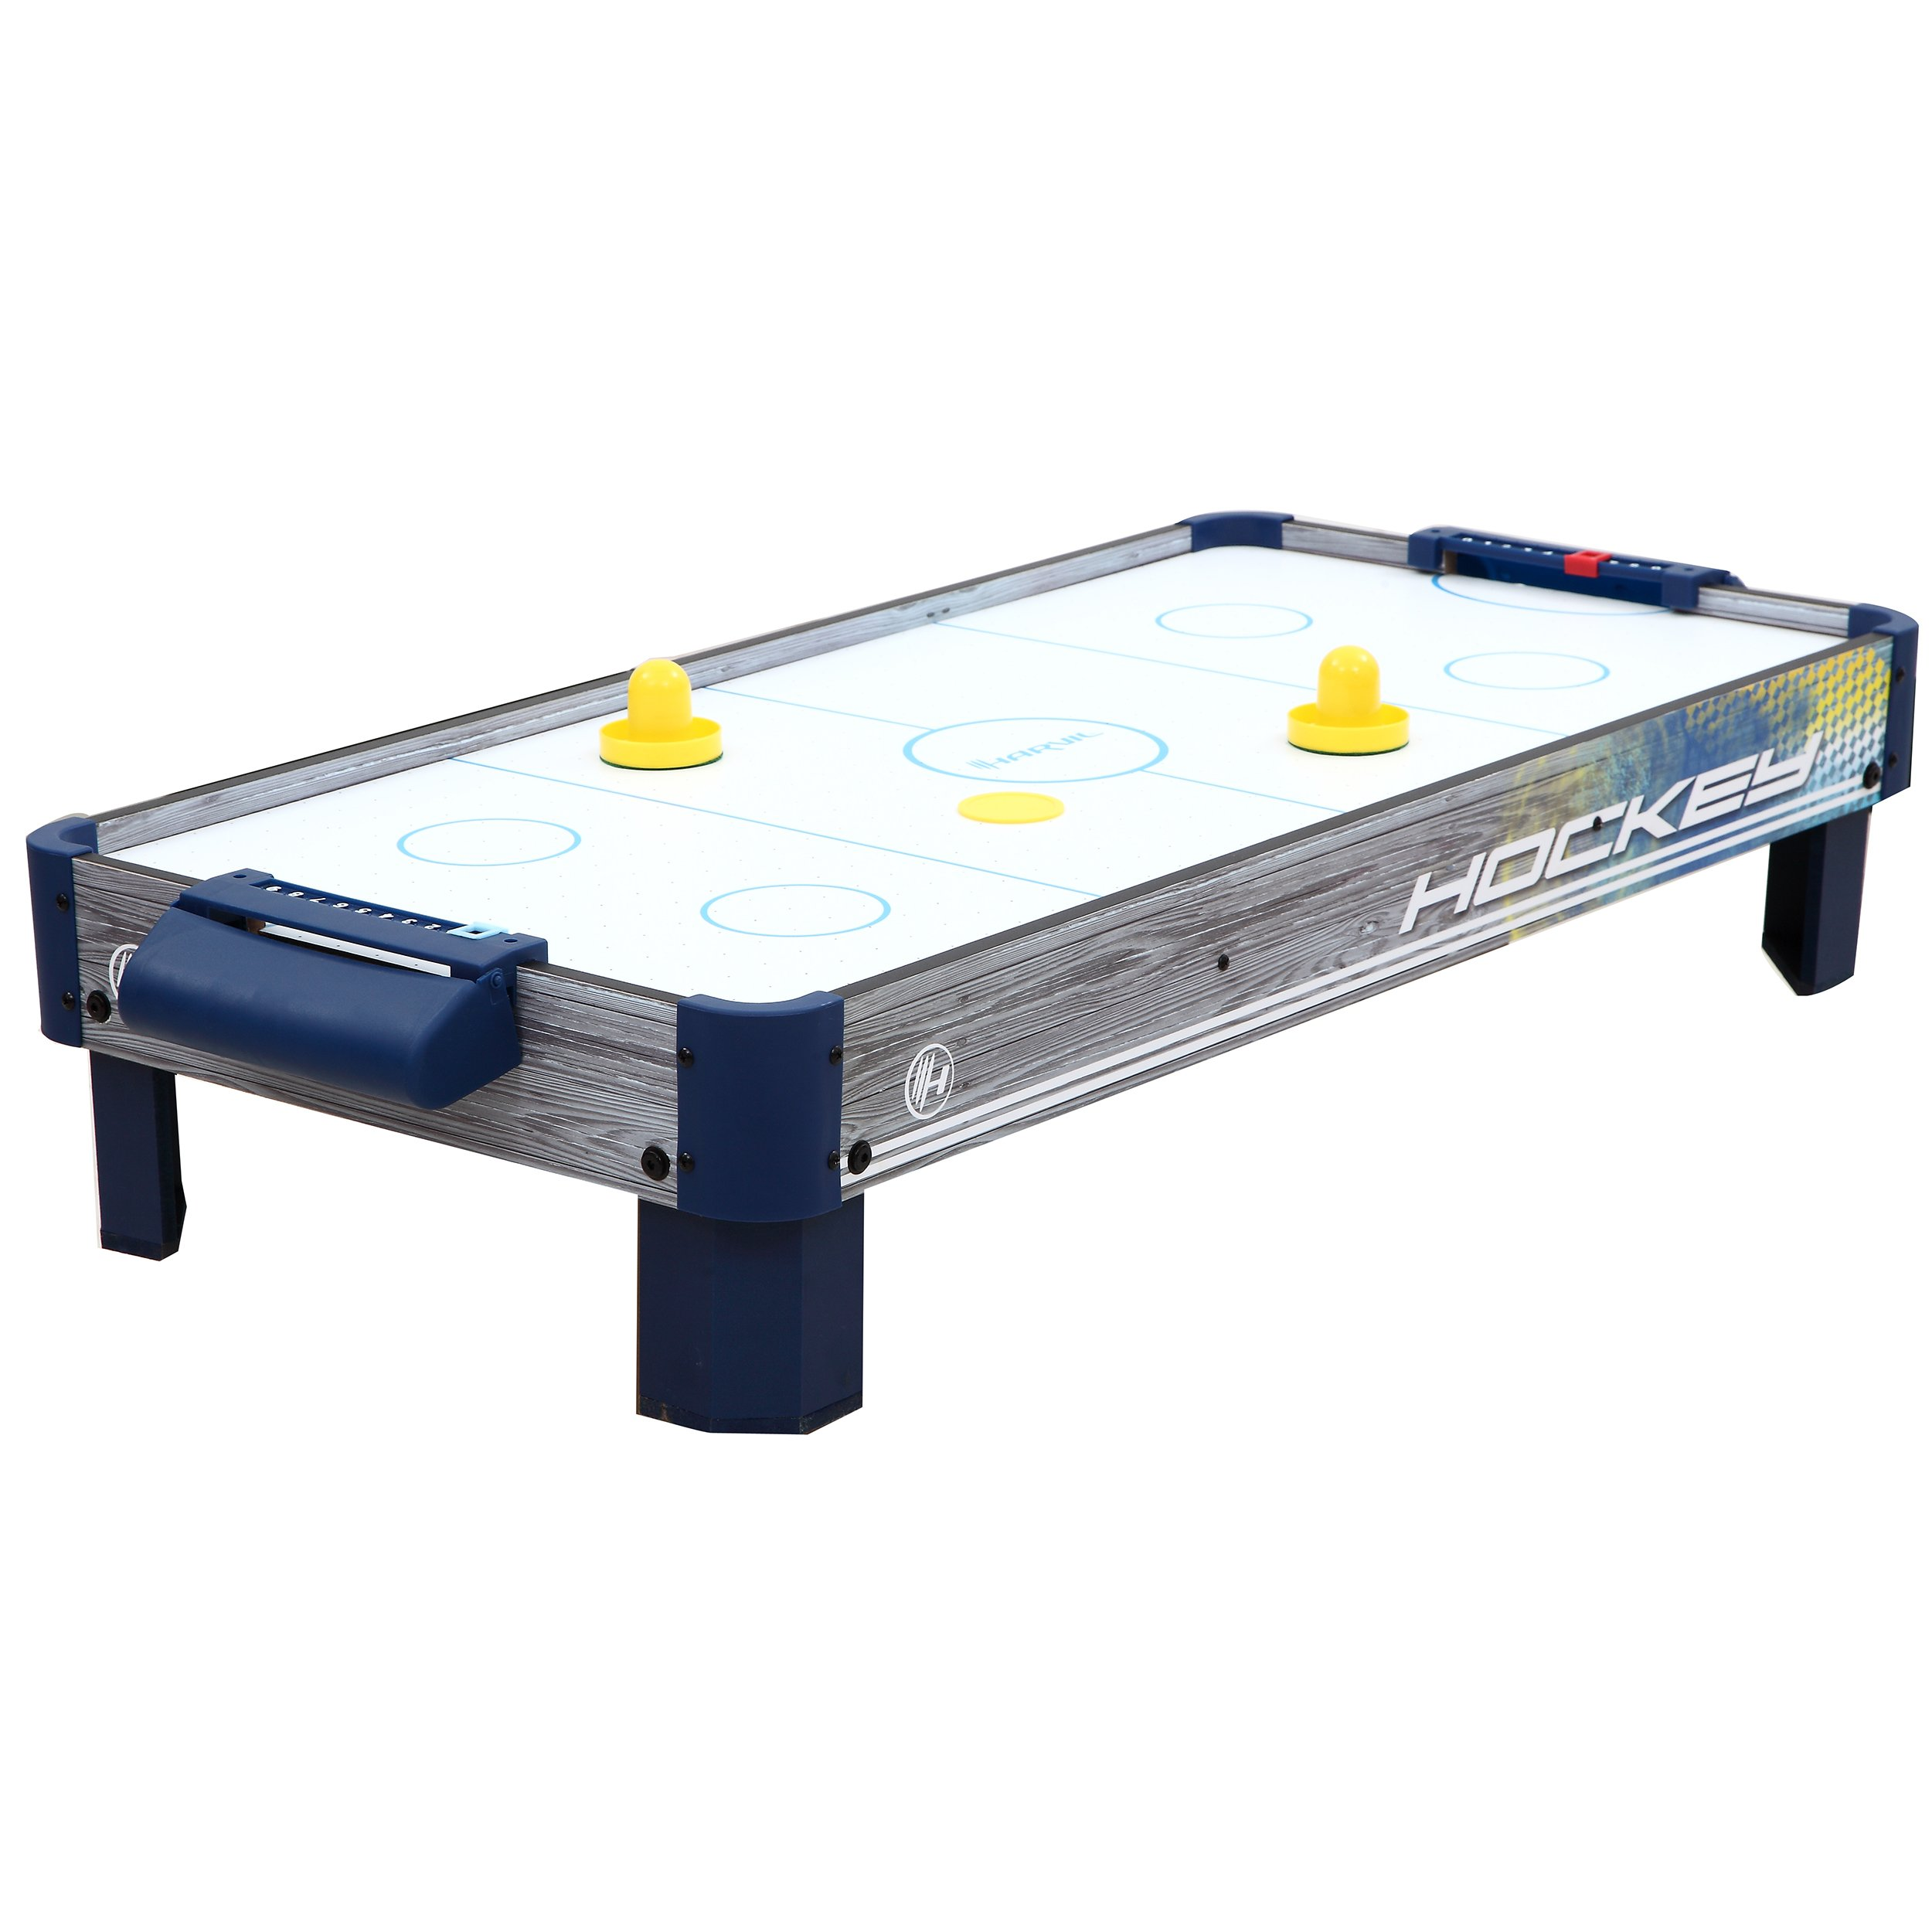 Harvil 40-Inch Tabletop Air Hockey Table with Powerful Electronic Blower, 2 Paddles, and 2 Pucks. by Harvil